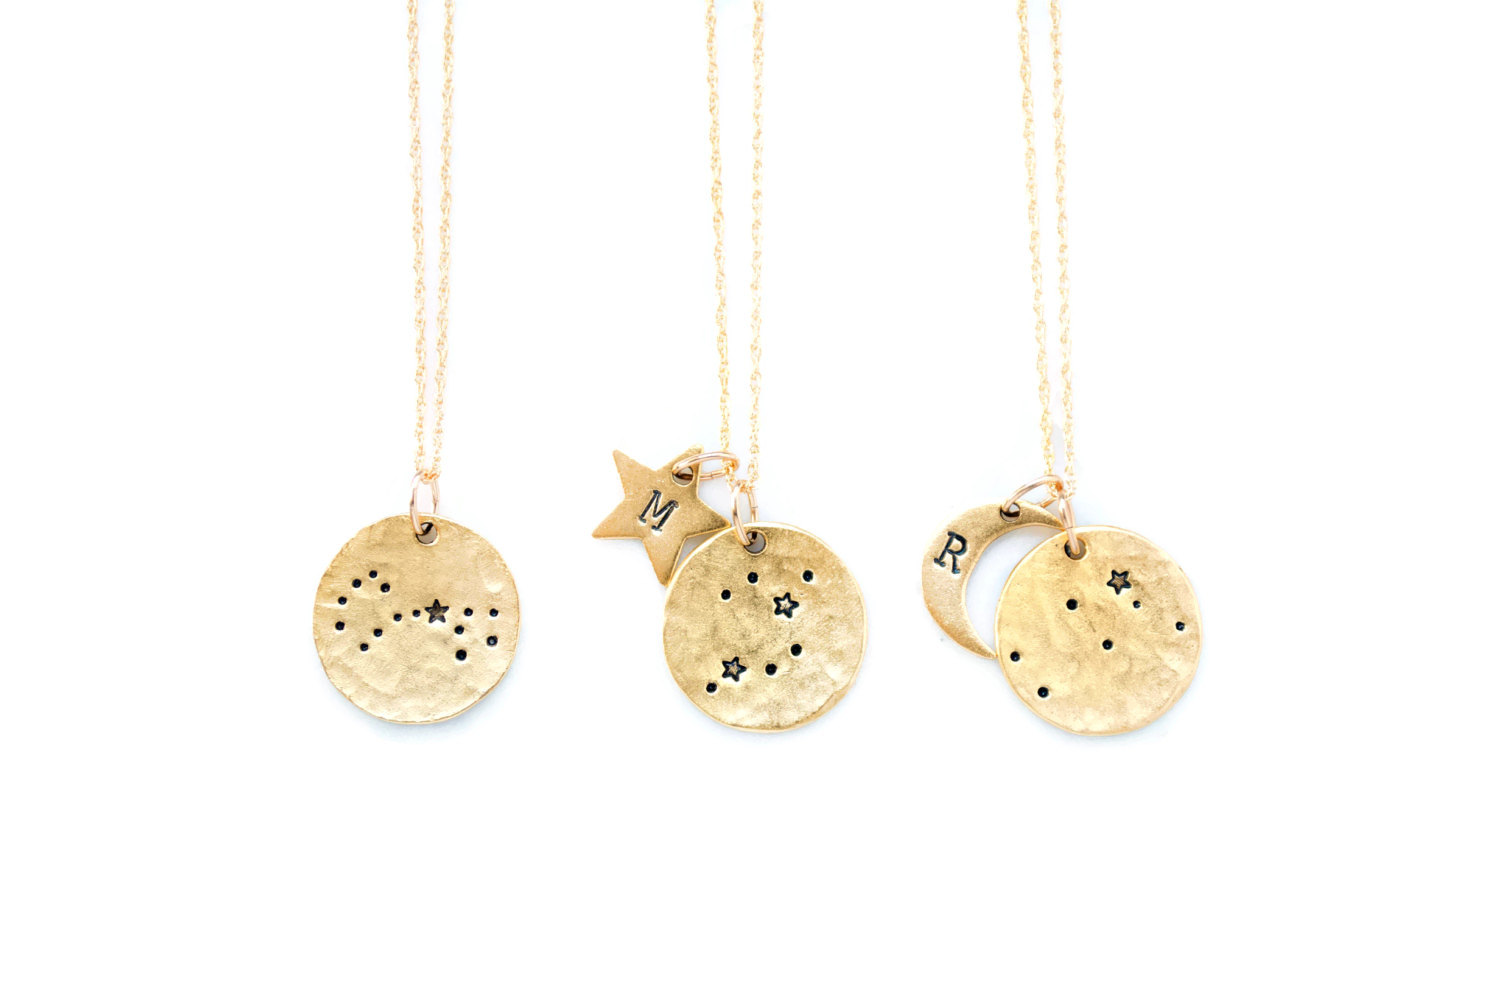 constellation necklaces for bridesmaids gifts